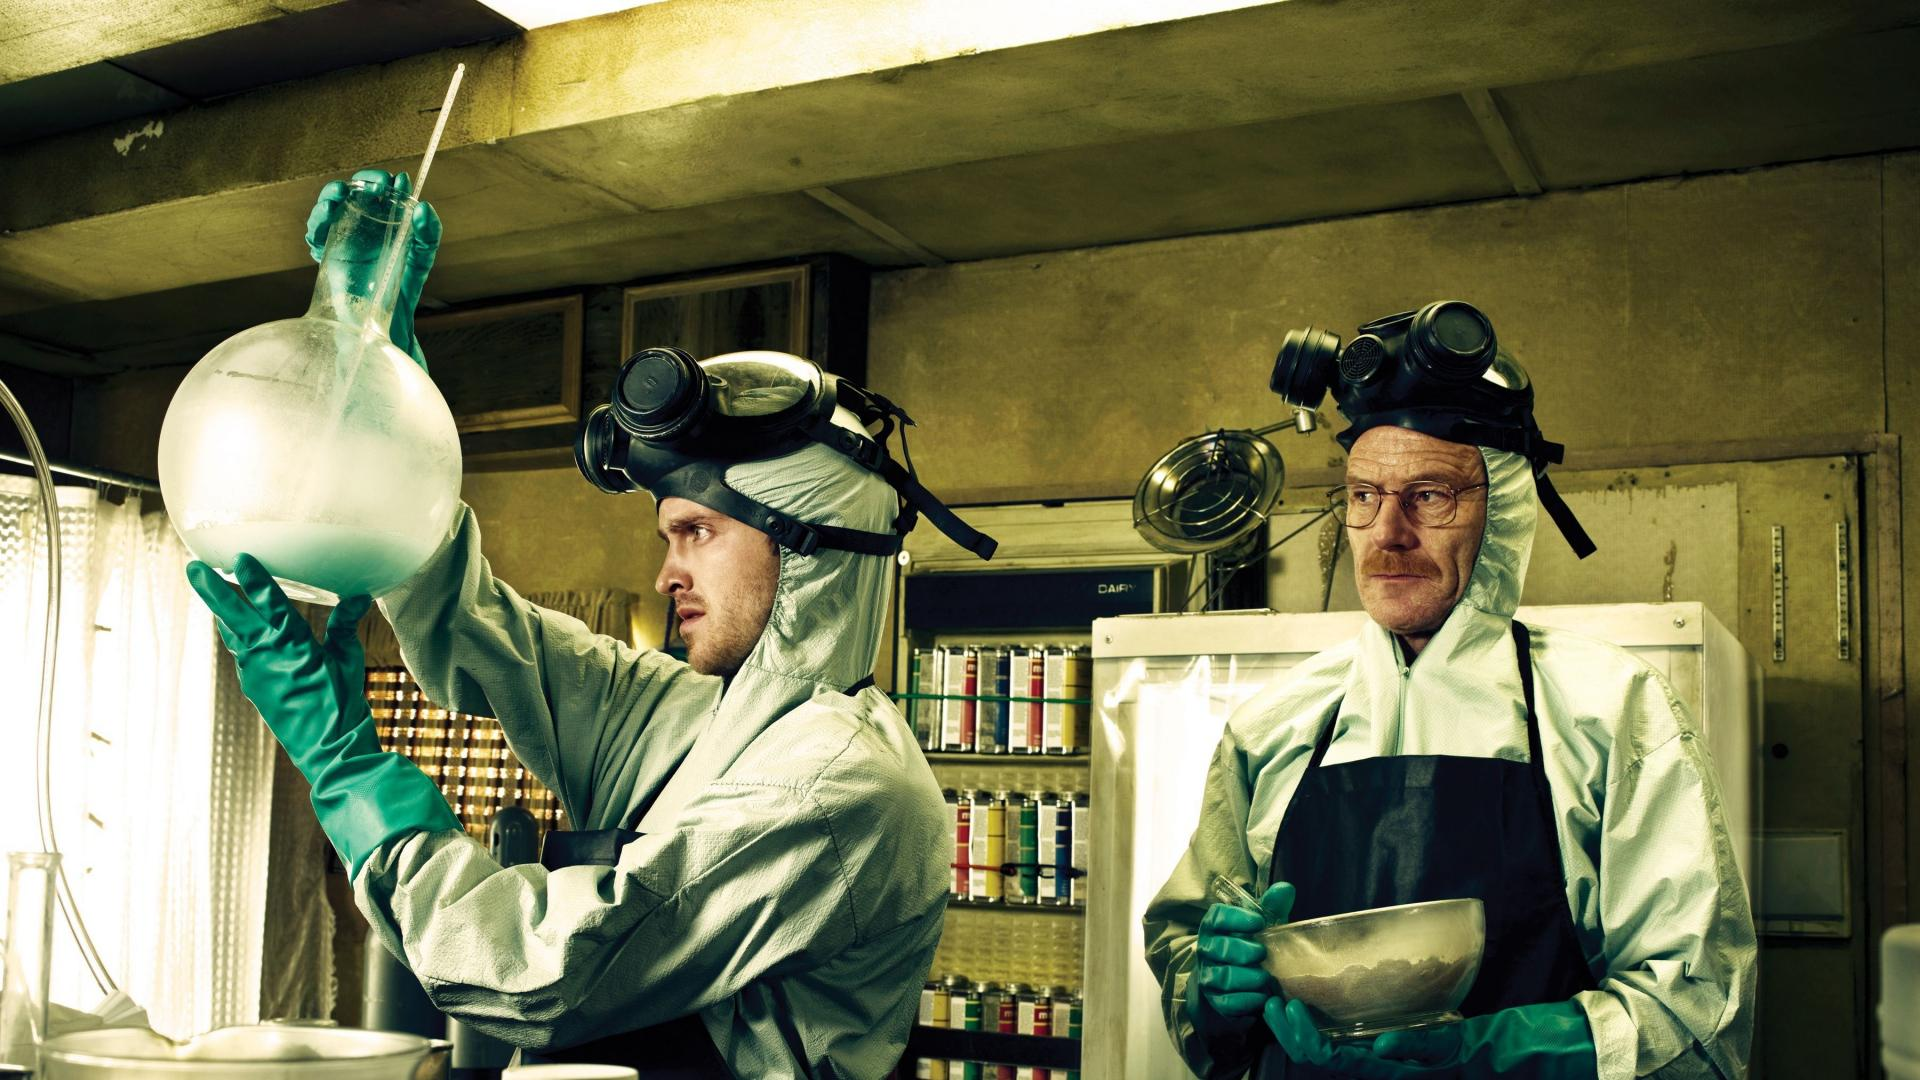 hd hintergrundbilder breaking bad methamphetamin labor chemiker produktion walter white jesse pinkman 1920x1080